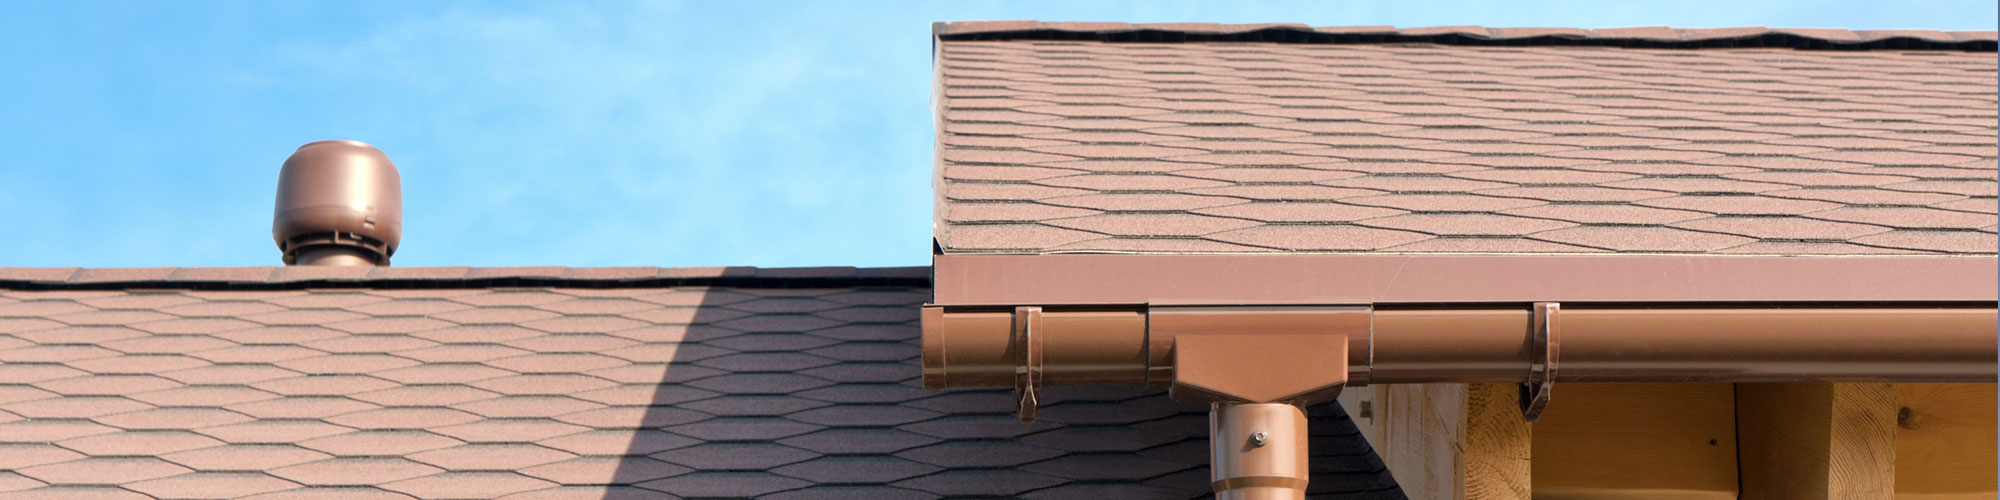 Gutter Guards Yorktown Heights Ny